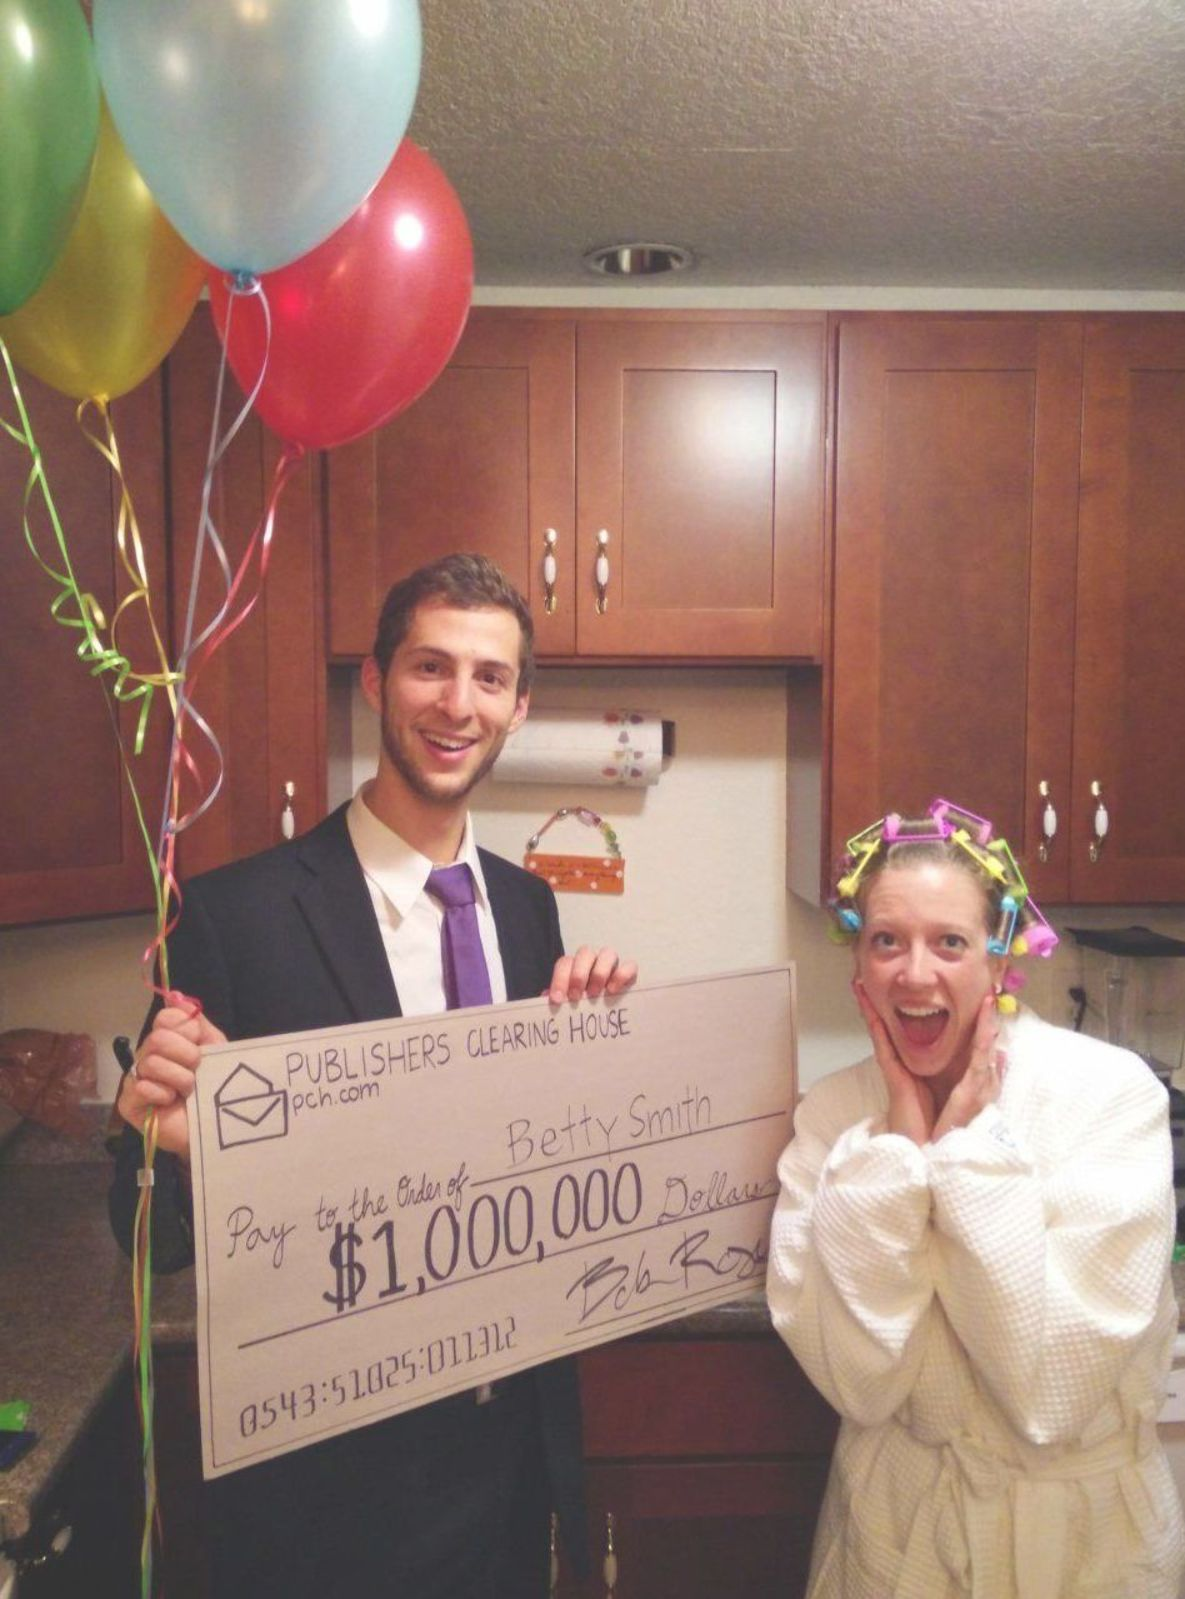 Couple Halloween Costume Ideas - The DIY Lighthouse | This Publishers Clearing House giant check man and winner is a super easy last minute Halloween costume idea. #halloweencostumesmen